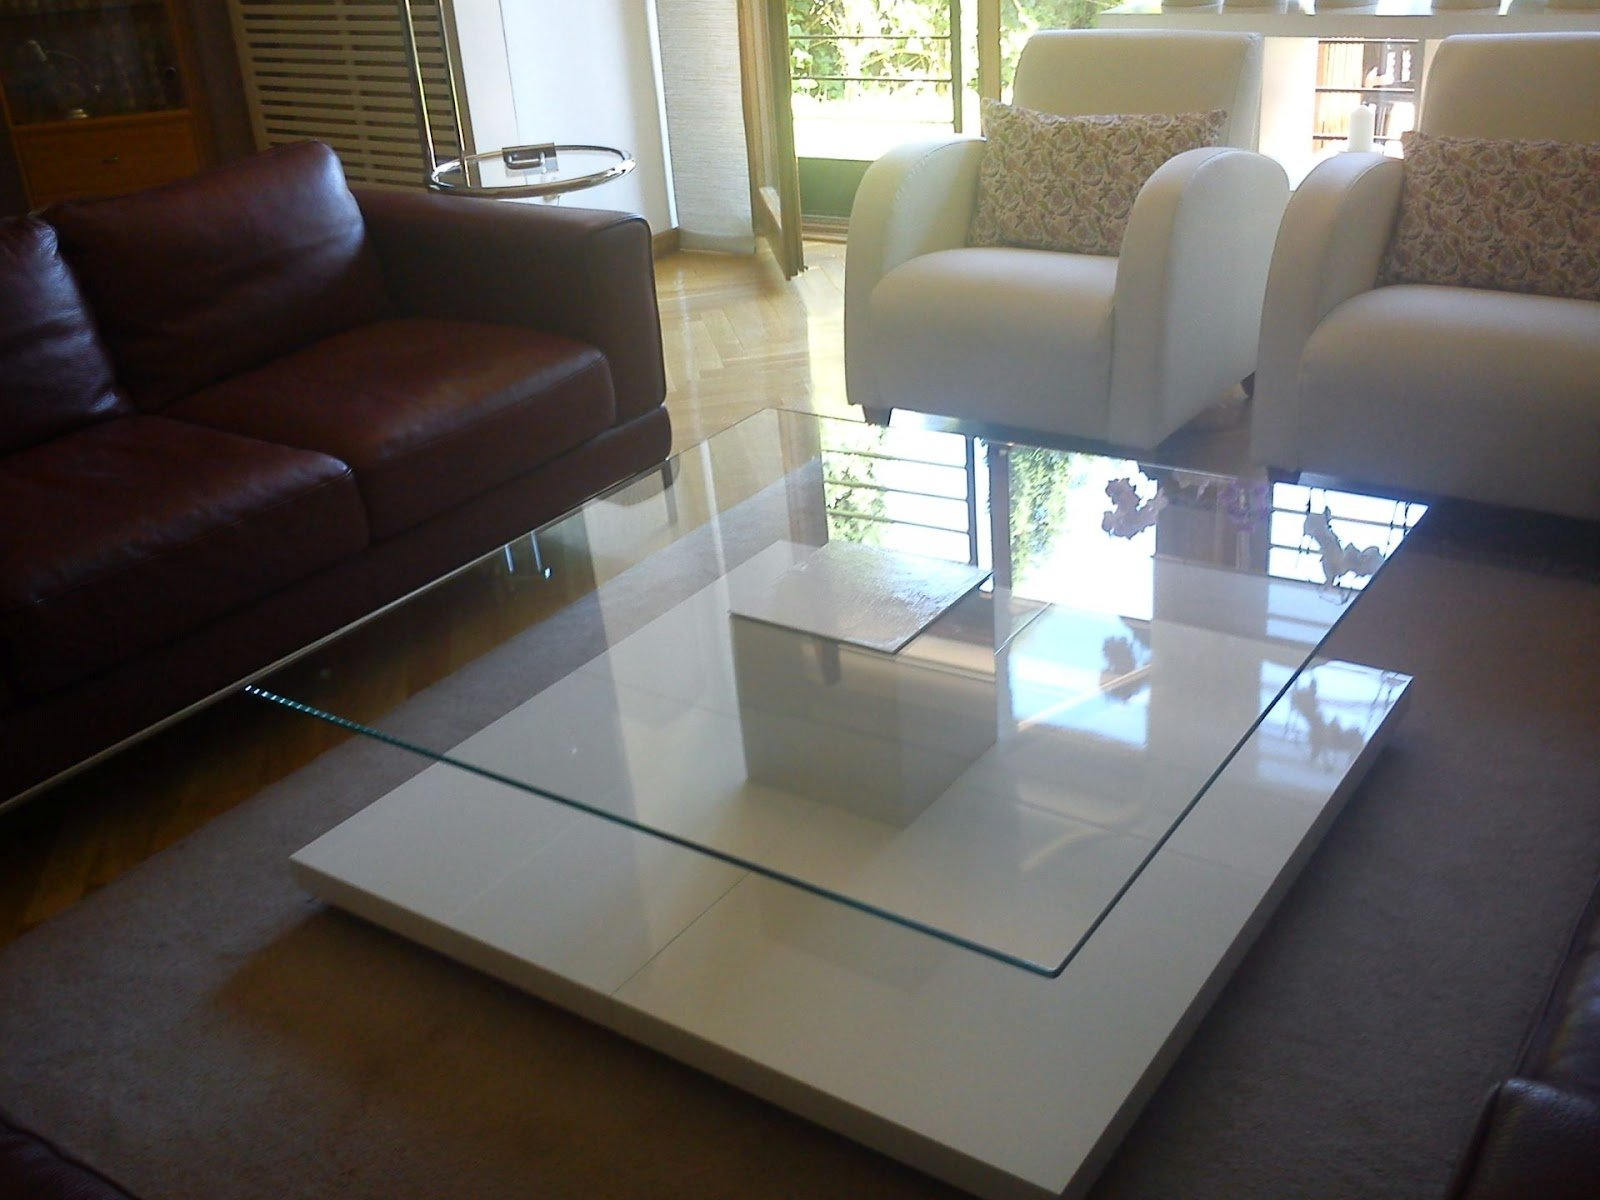 Four lack table base coffee table ikea hackers ikea hackers - Ikea table basse lack ...